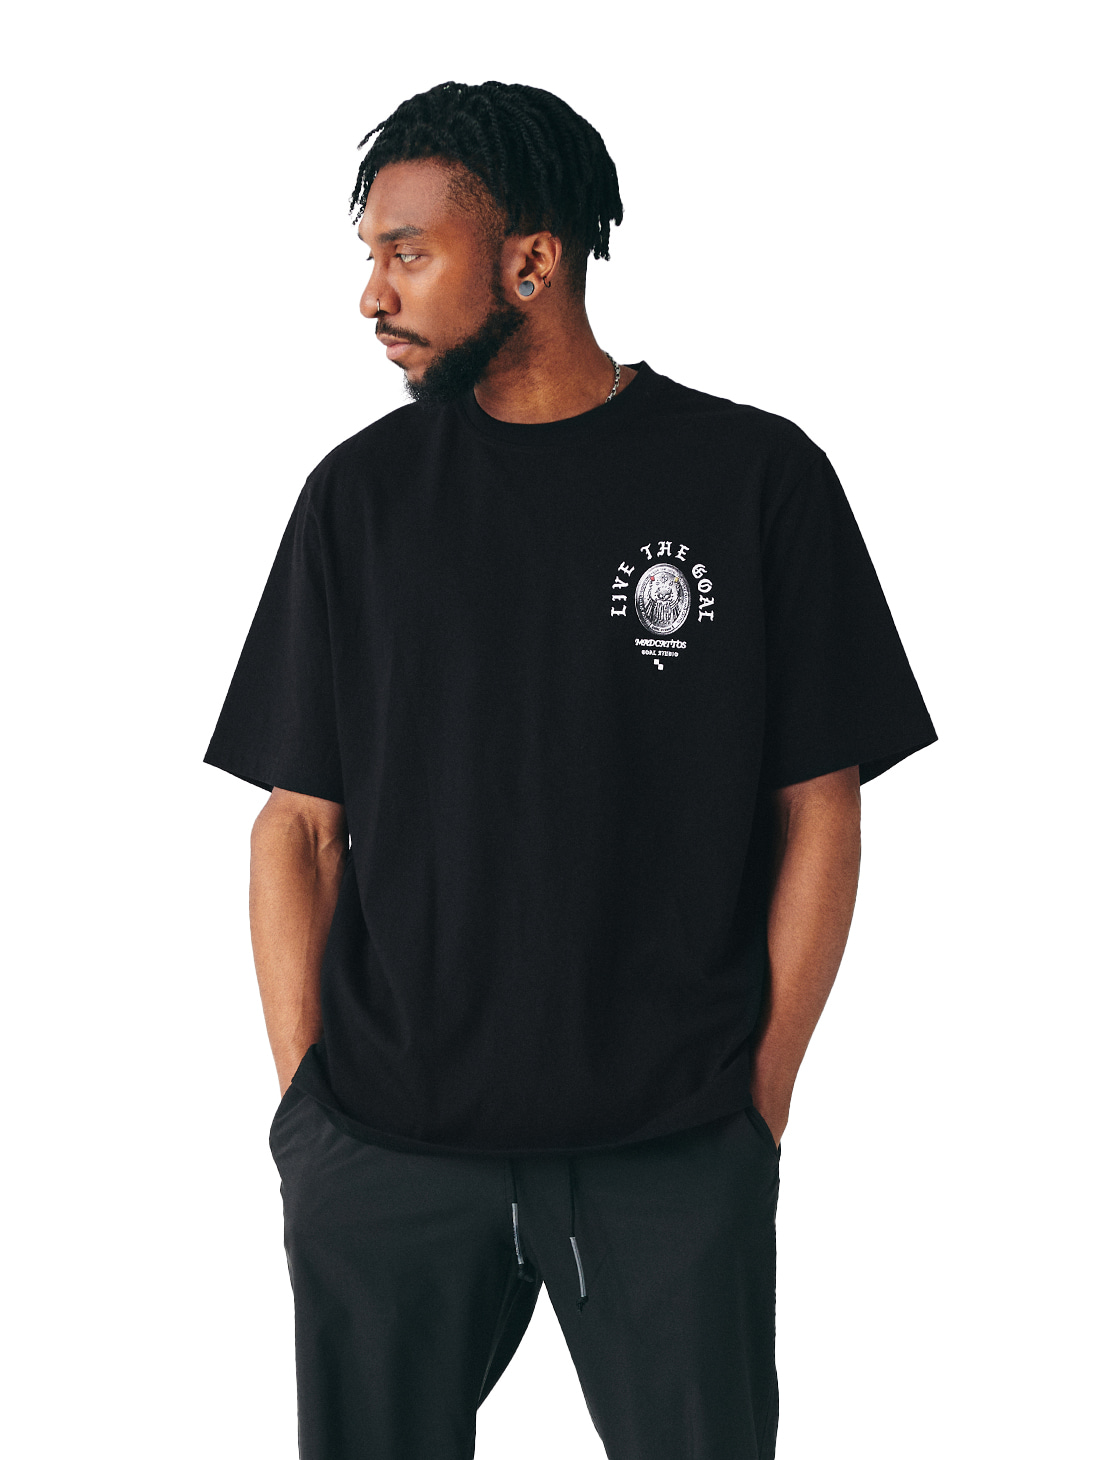 MC COIN GRAPHIC TEE - BLACK